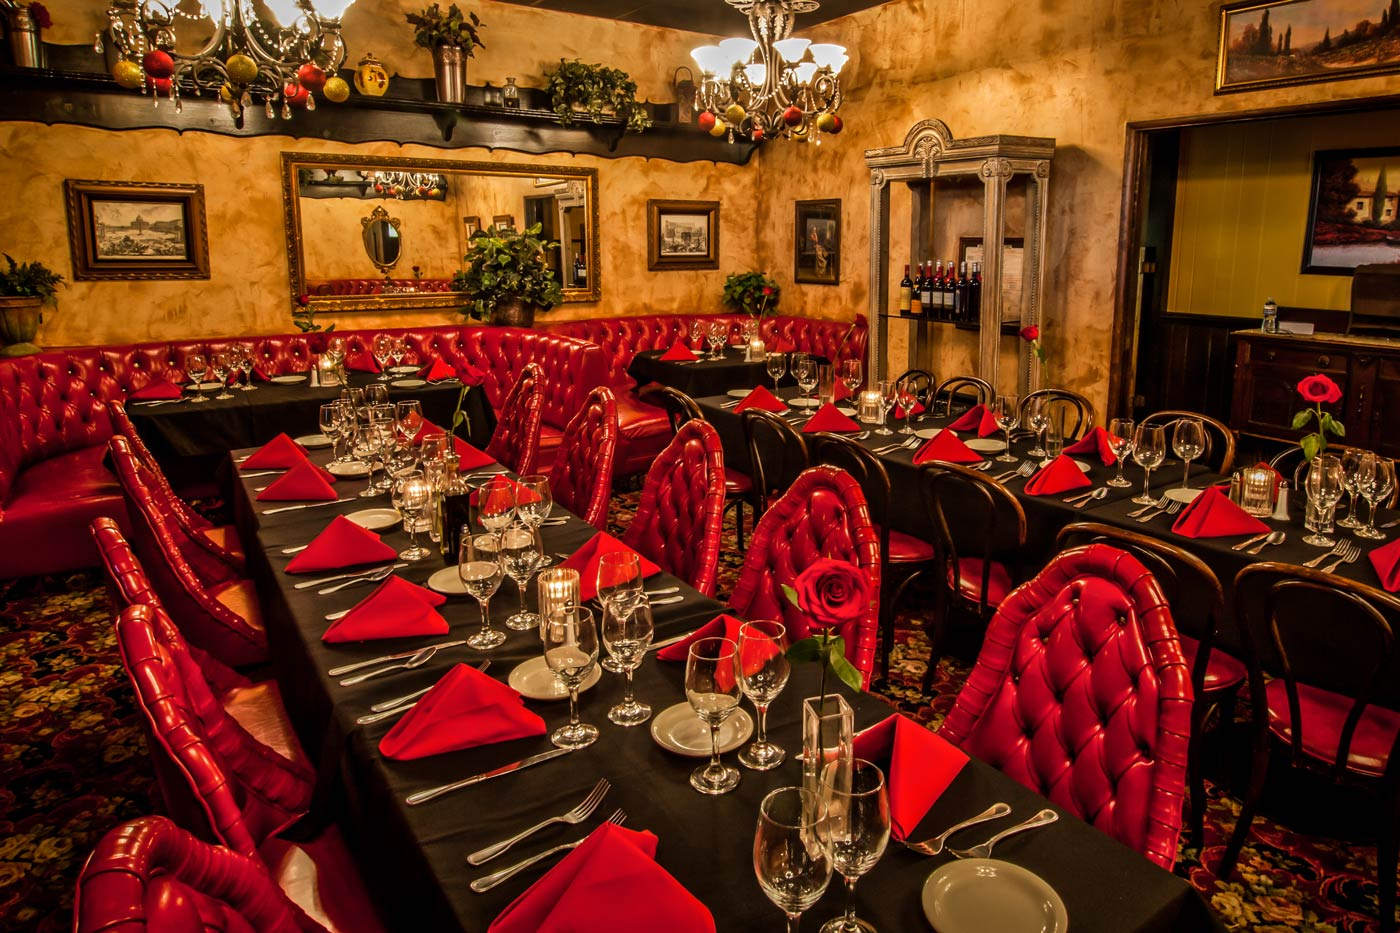 The Best Italian Food In Huntington Beach